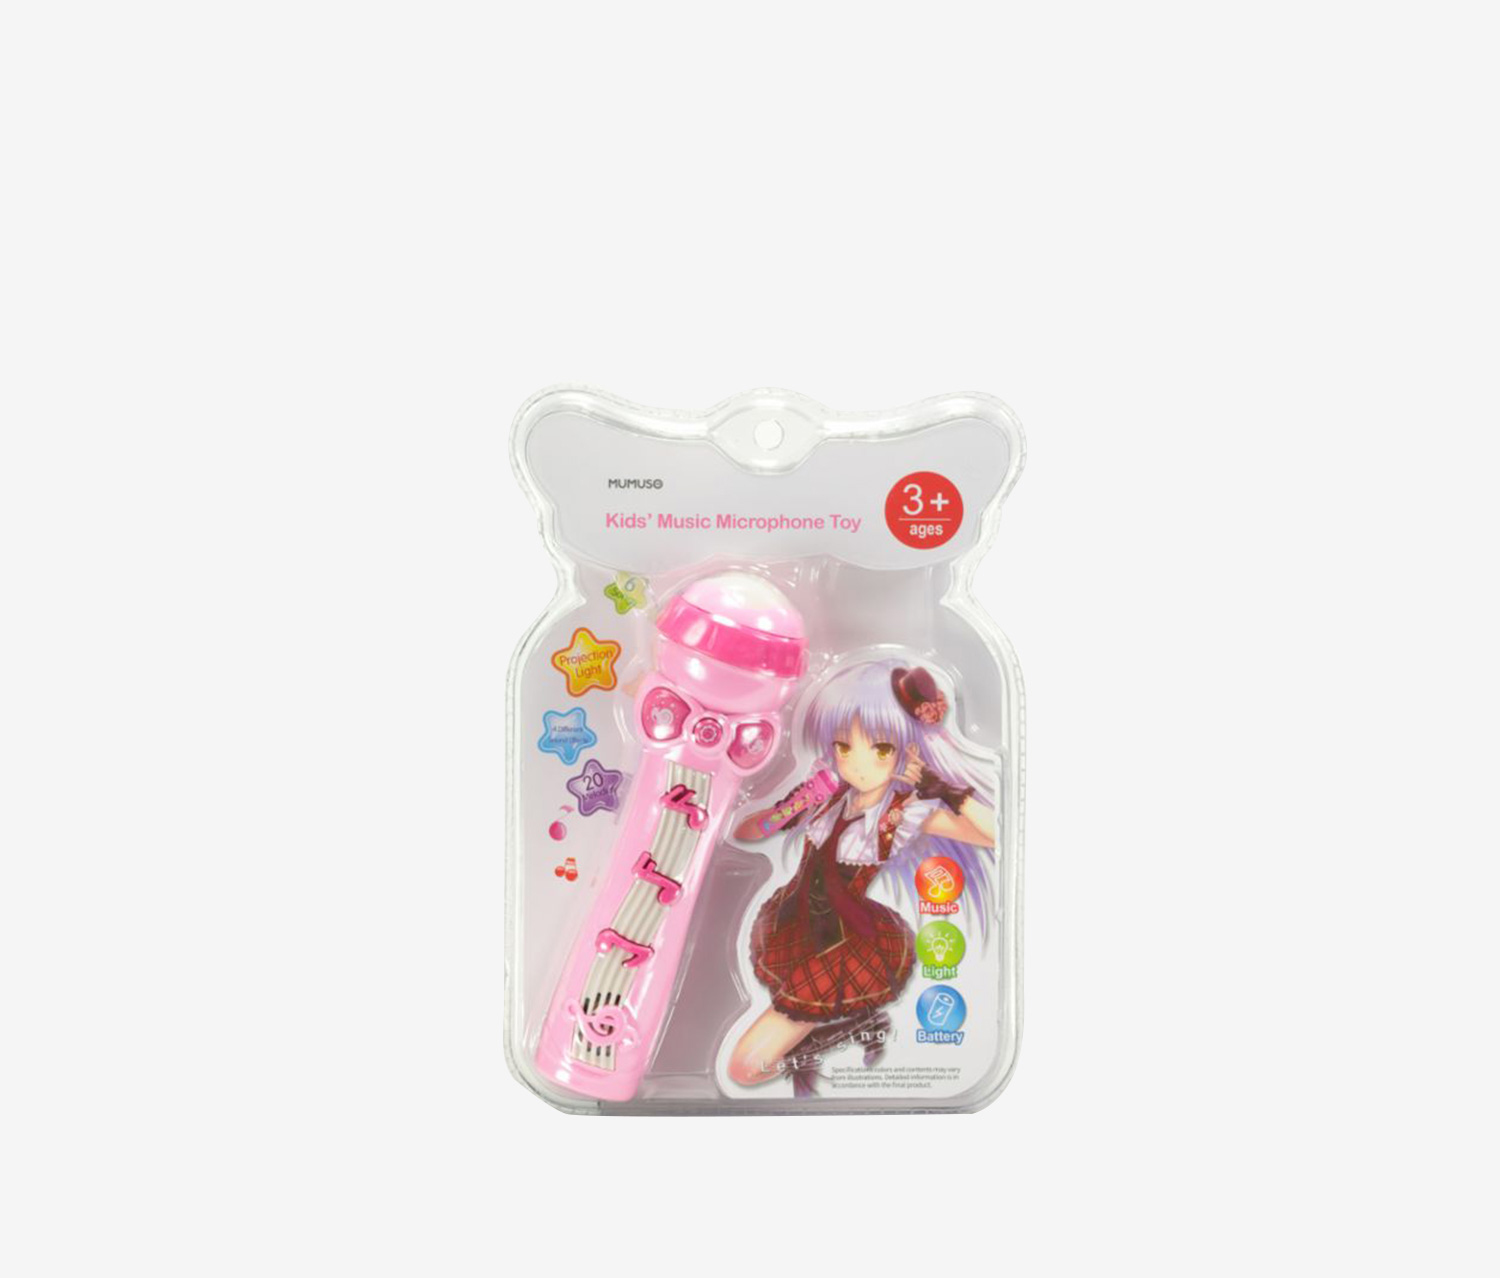 Kids Music Microphone Toy, Pink